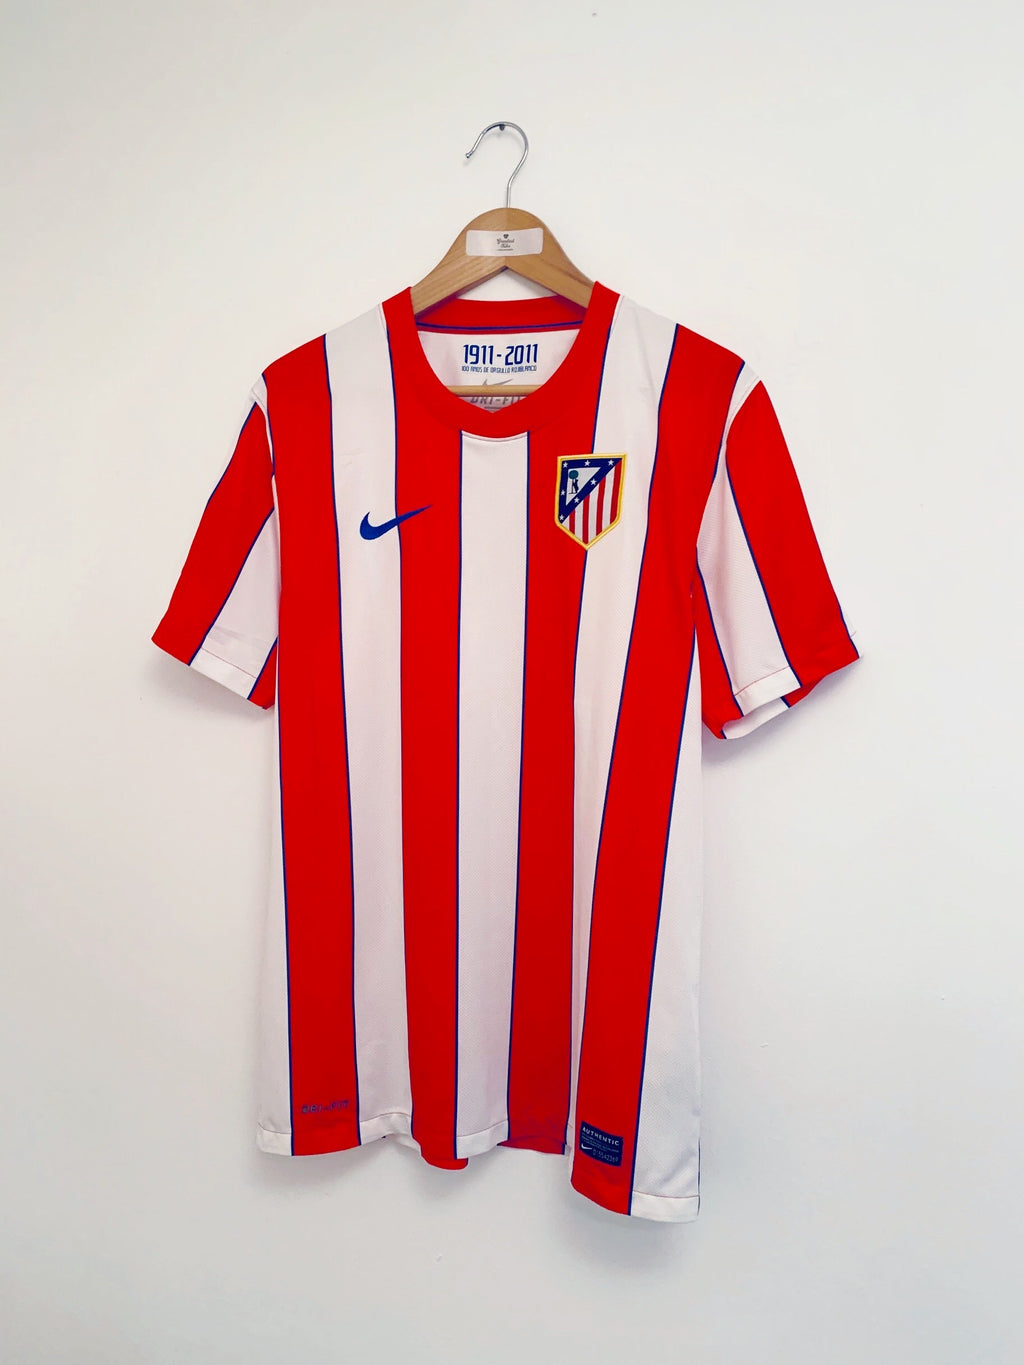 2011/12 Atletico Madrid Home Shirt (M) 9.5/10